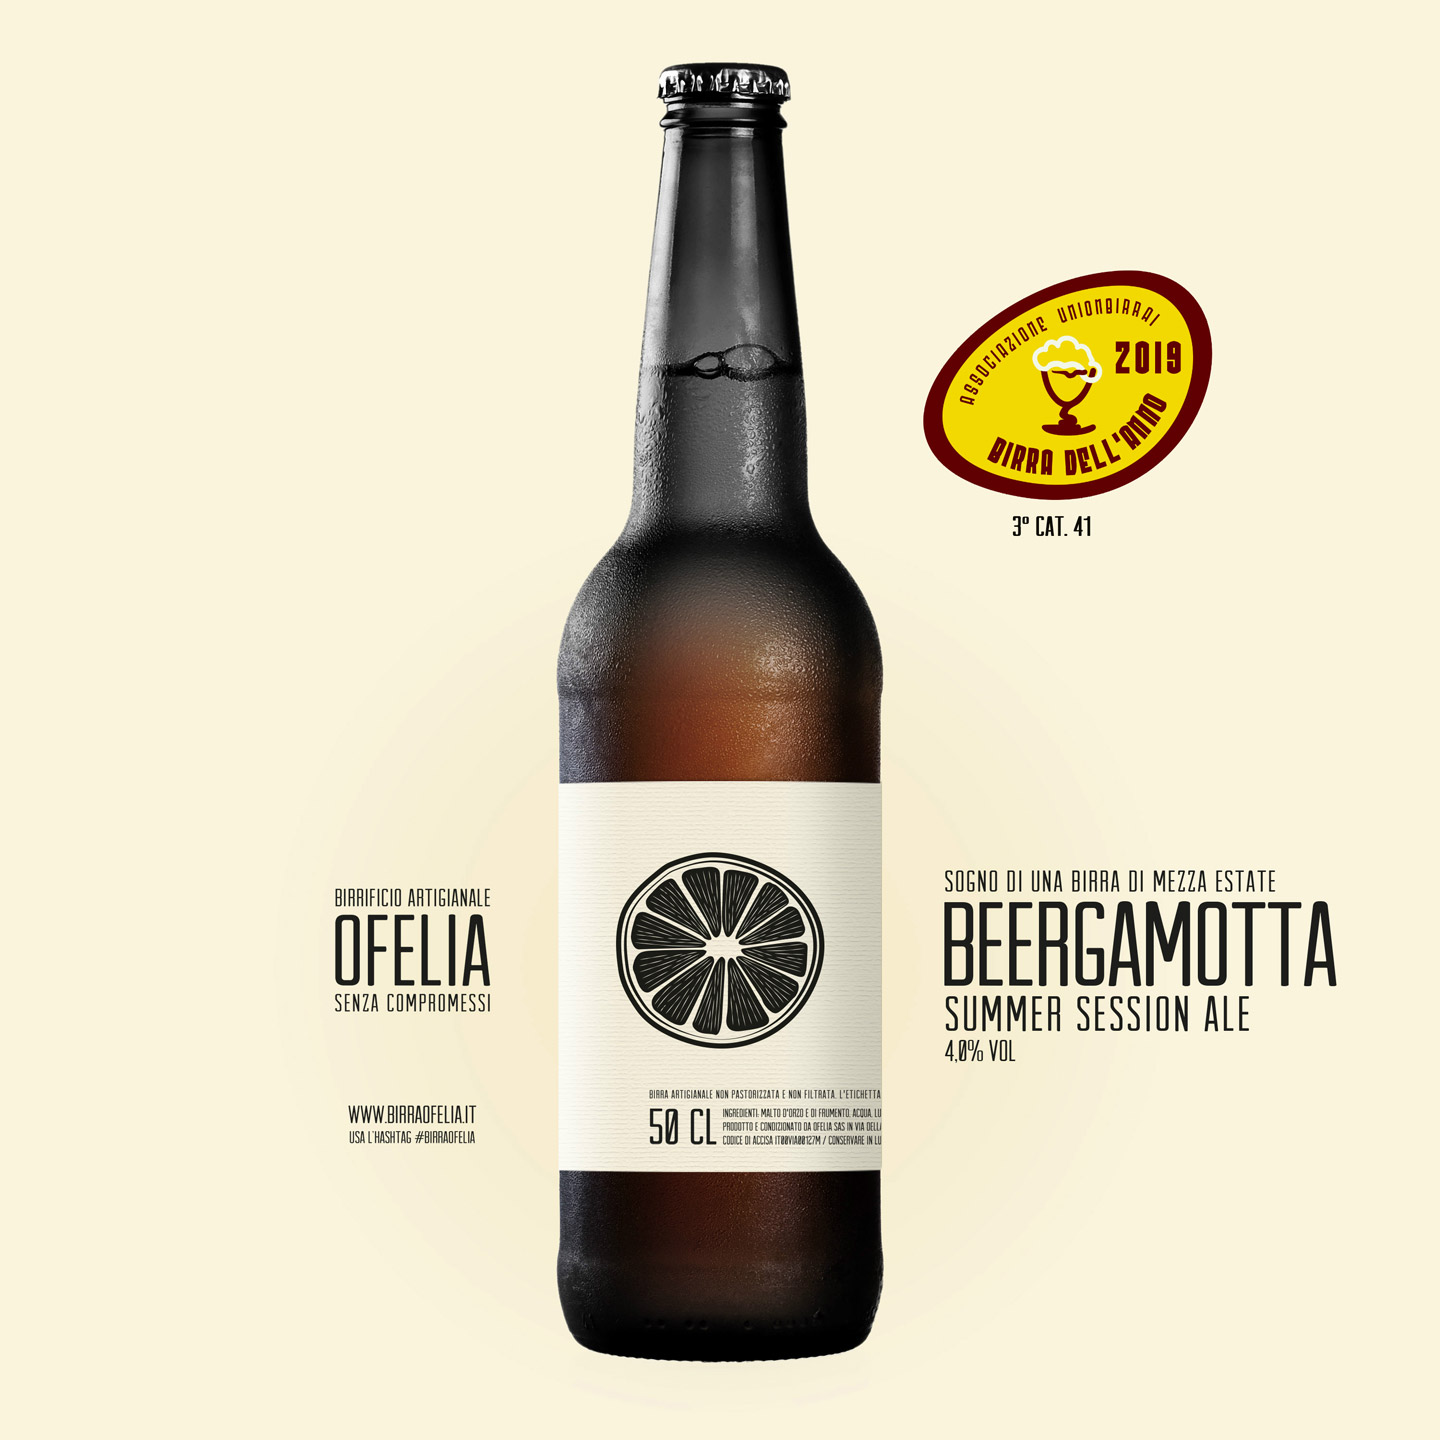 summer session ale beergamotta ofelia